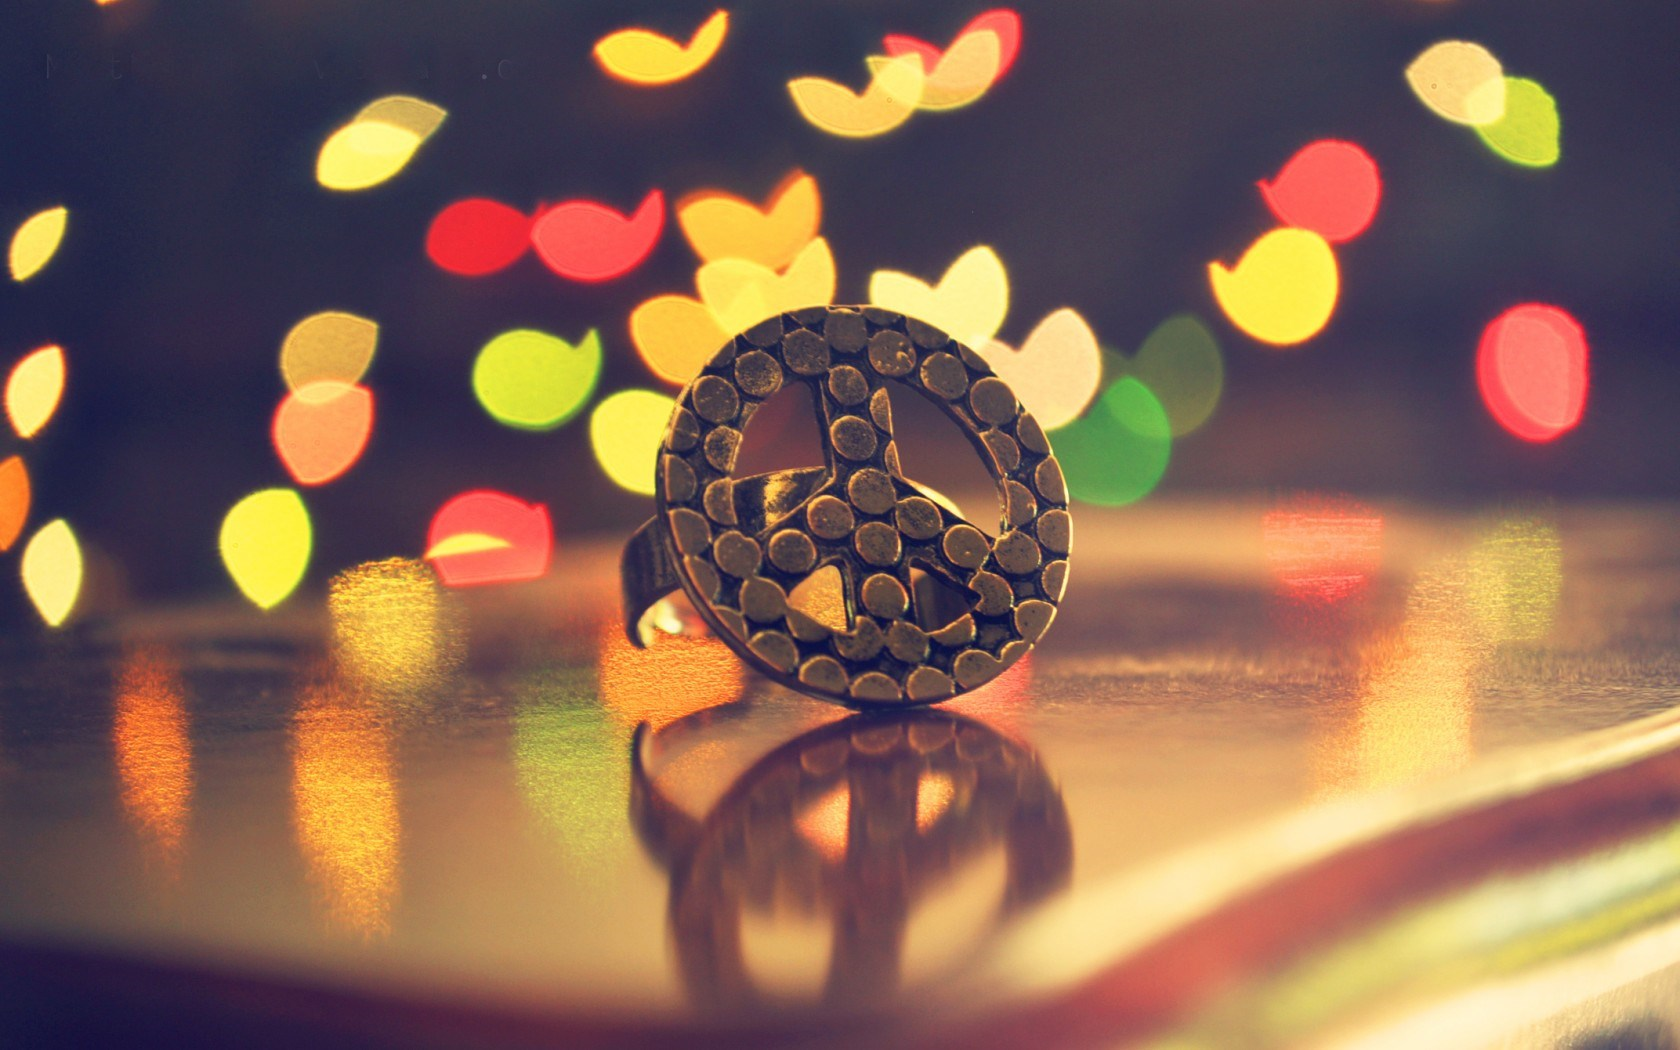 Ring Peace Sign Bokeh Colorful Lights HD Wallpaper